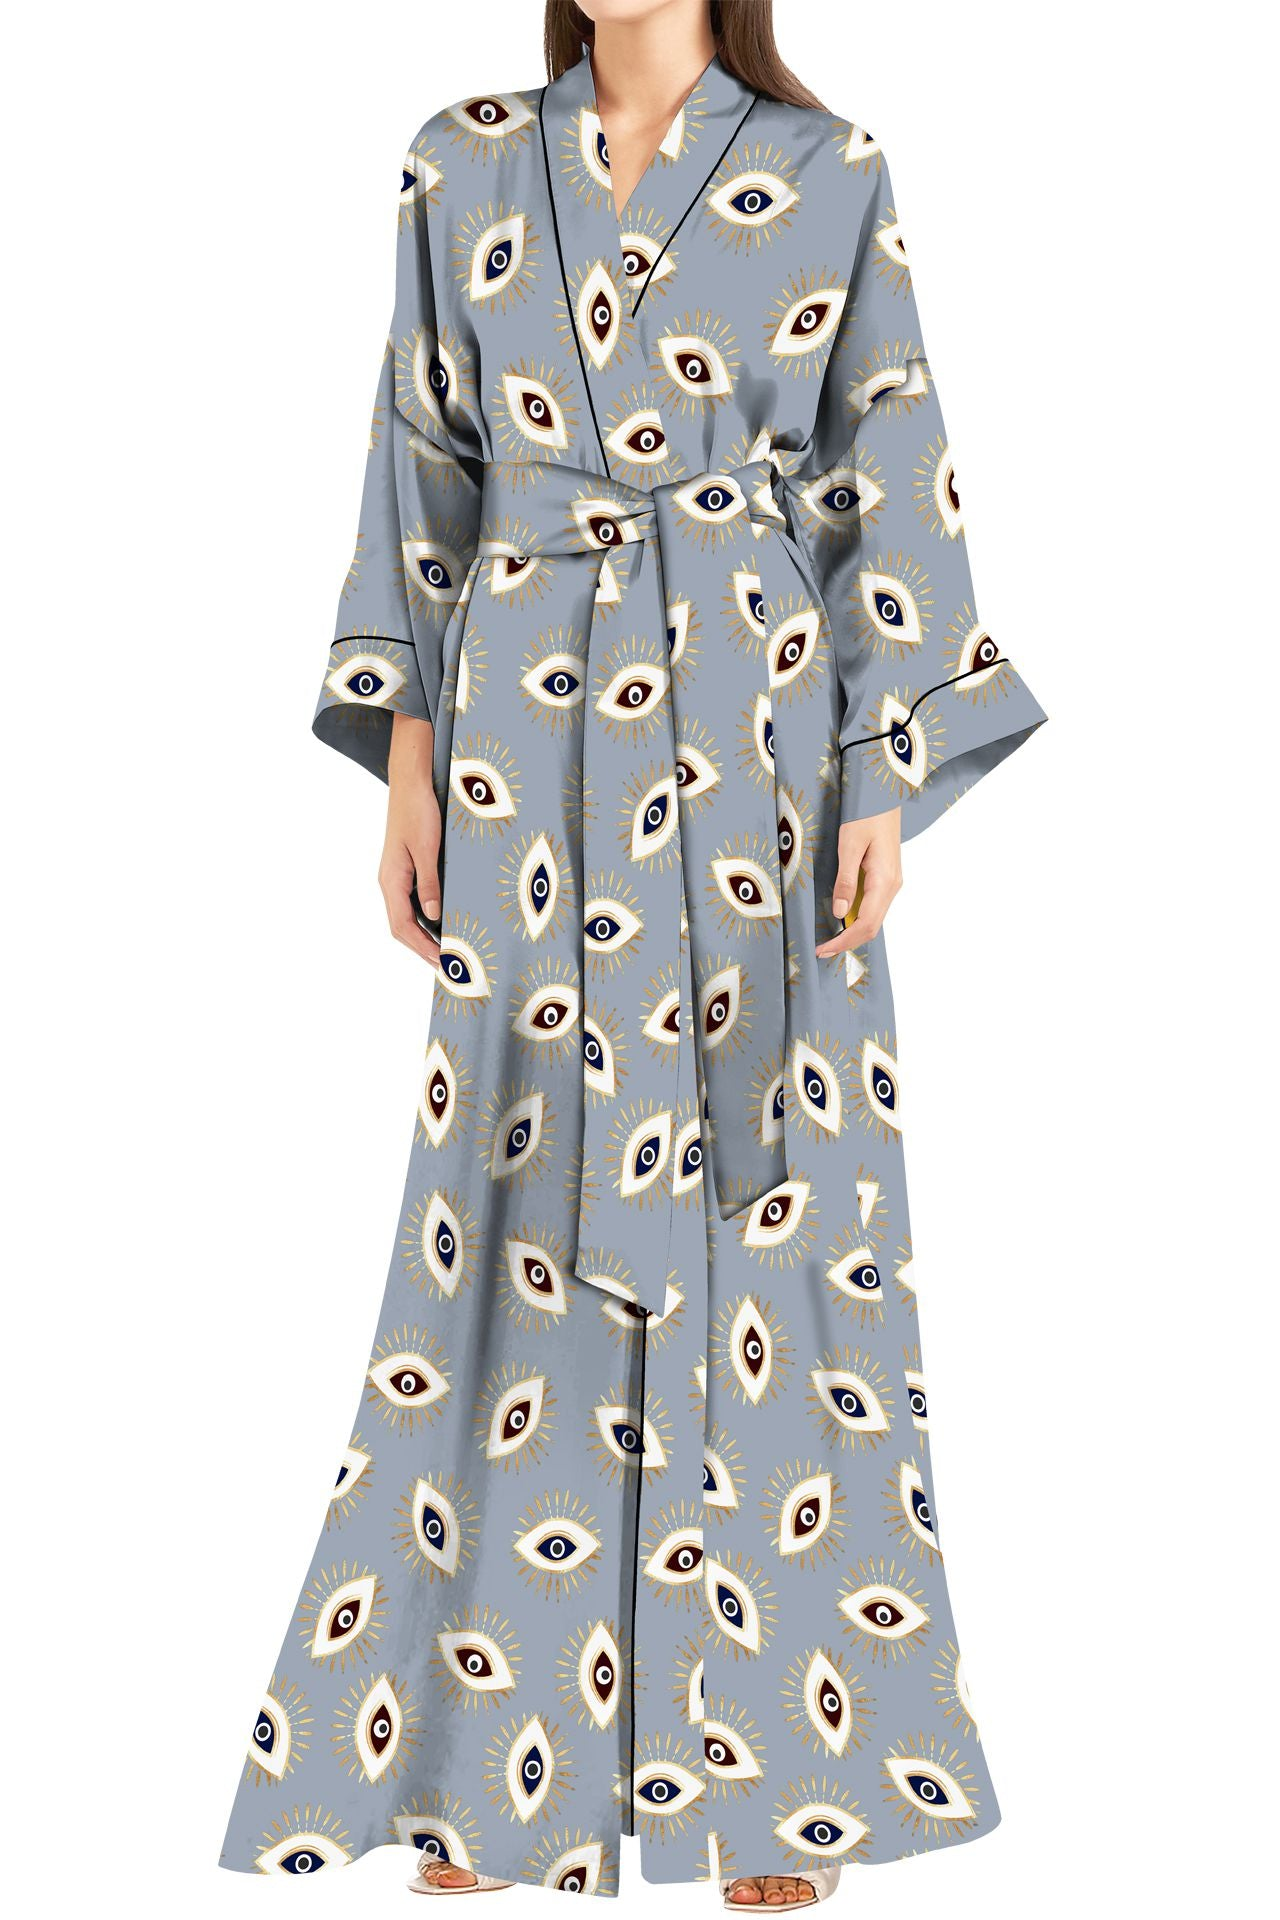 Made With Sustainable Vegan Silk Cupro Full Length Kimono Robe